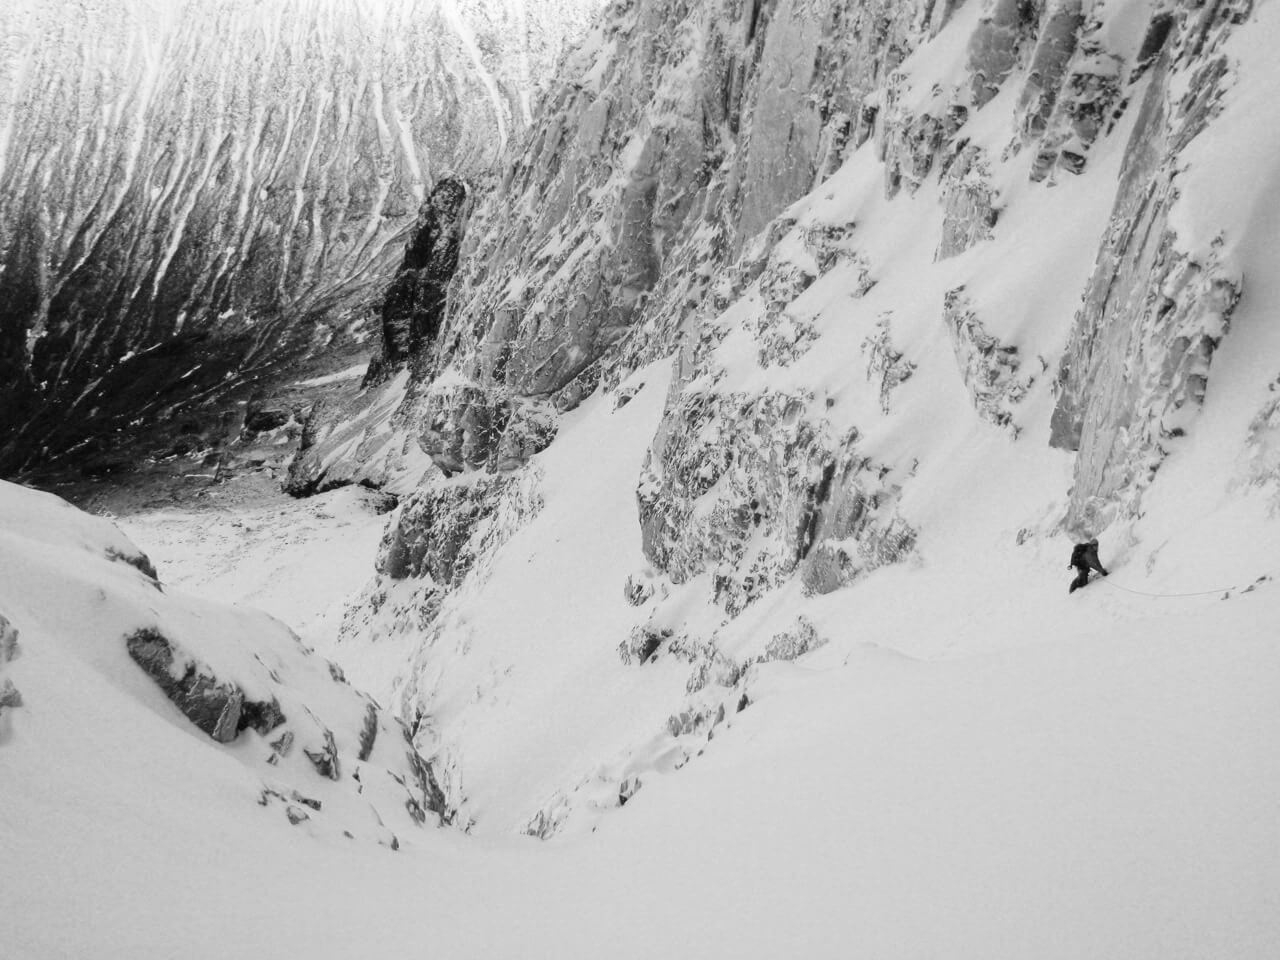 A climber in a snow gully in the middle of the route